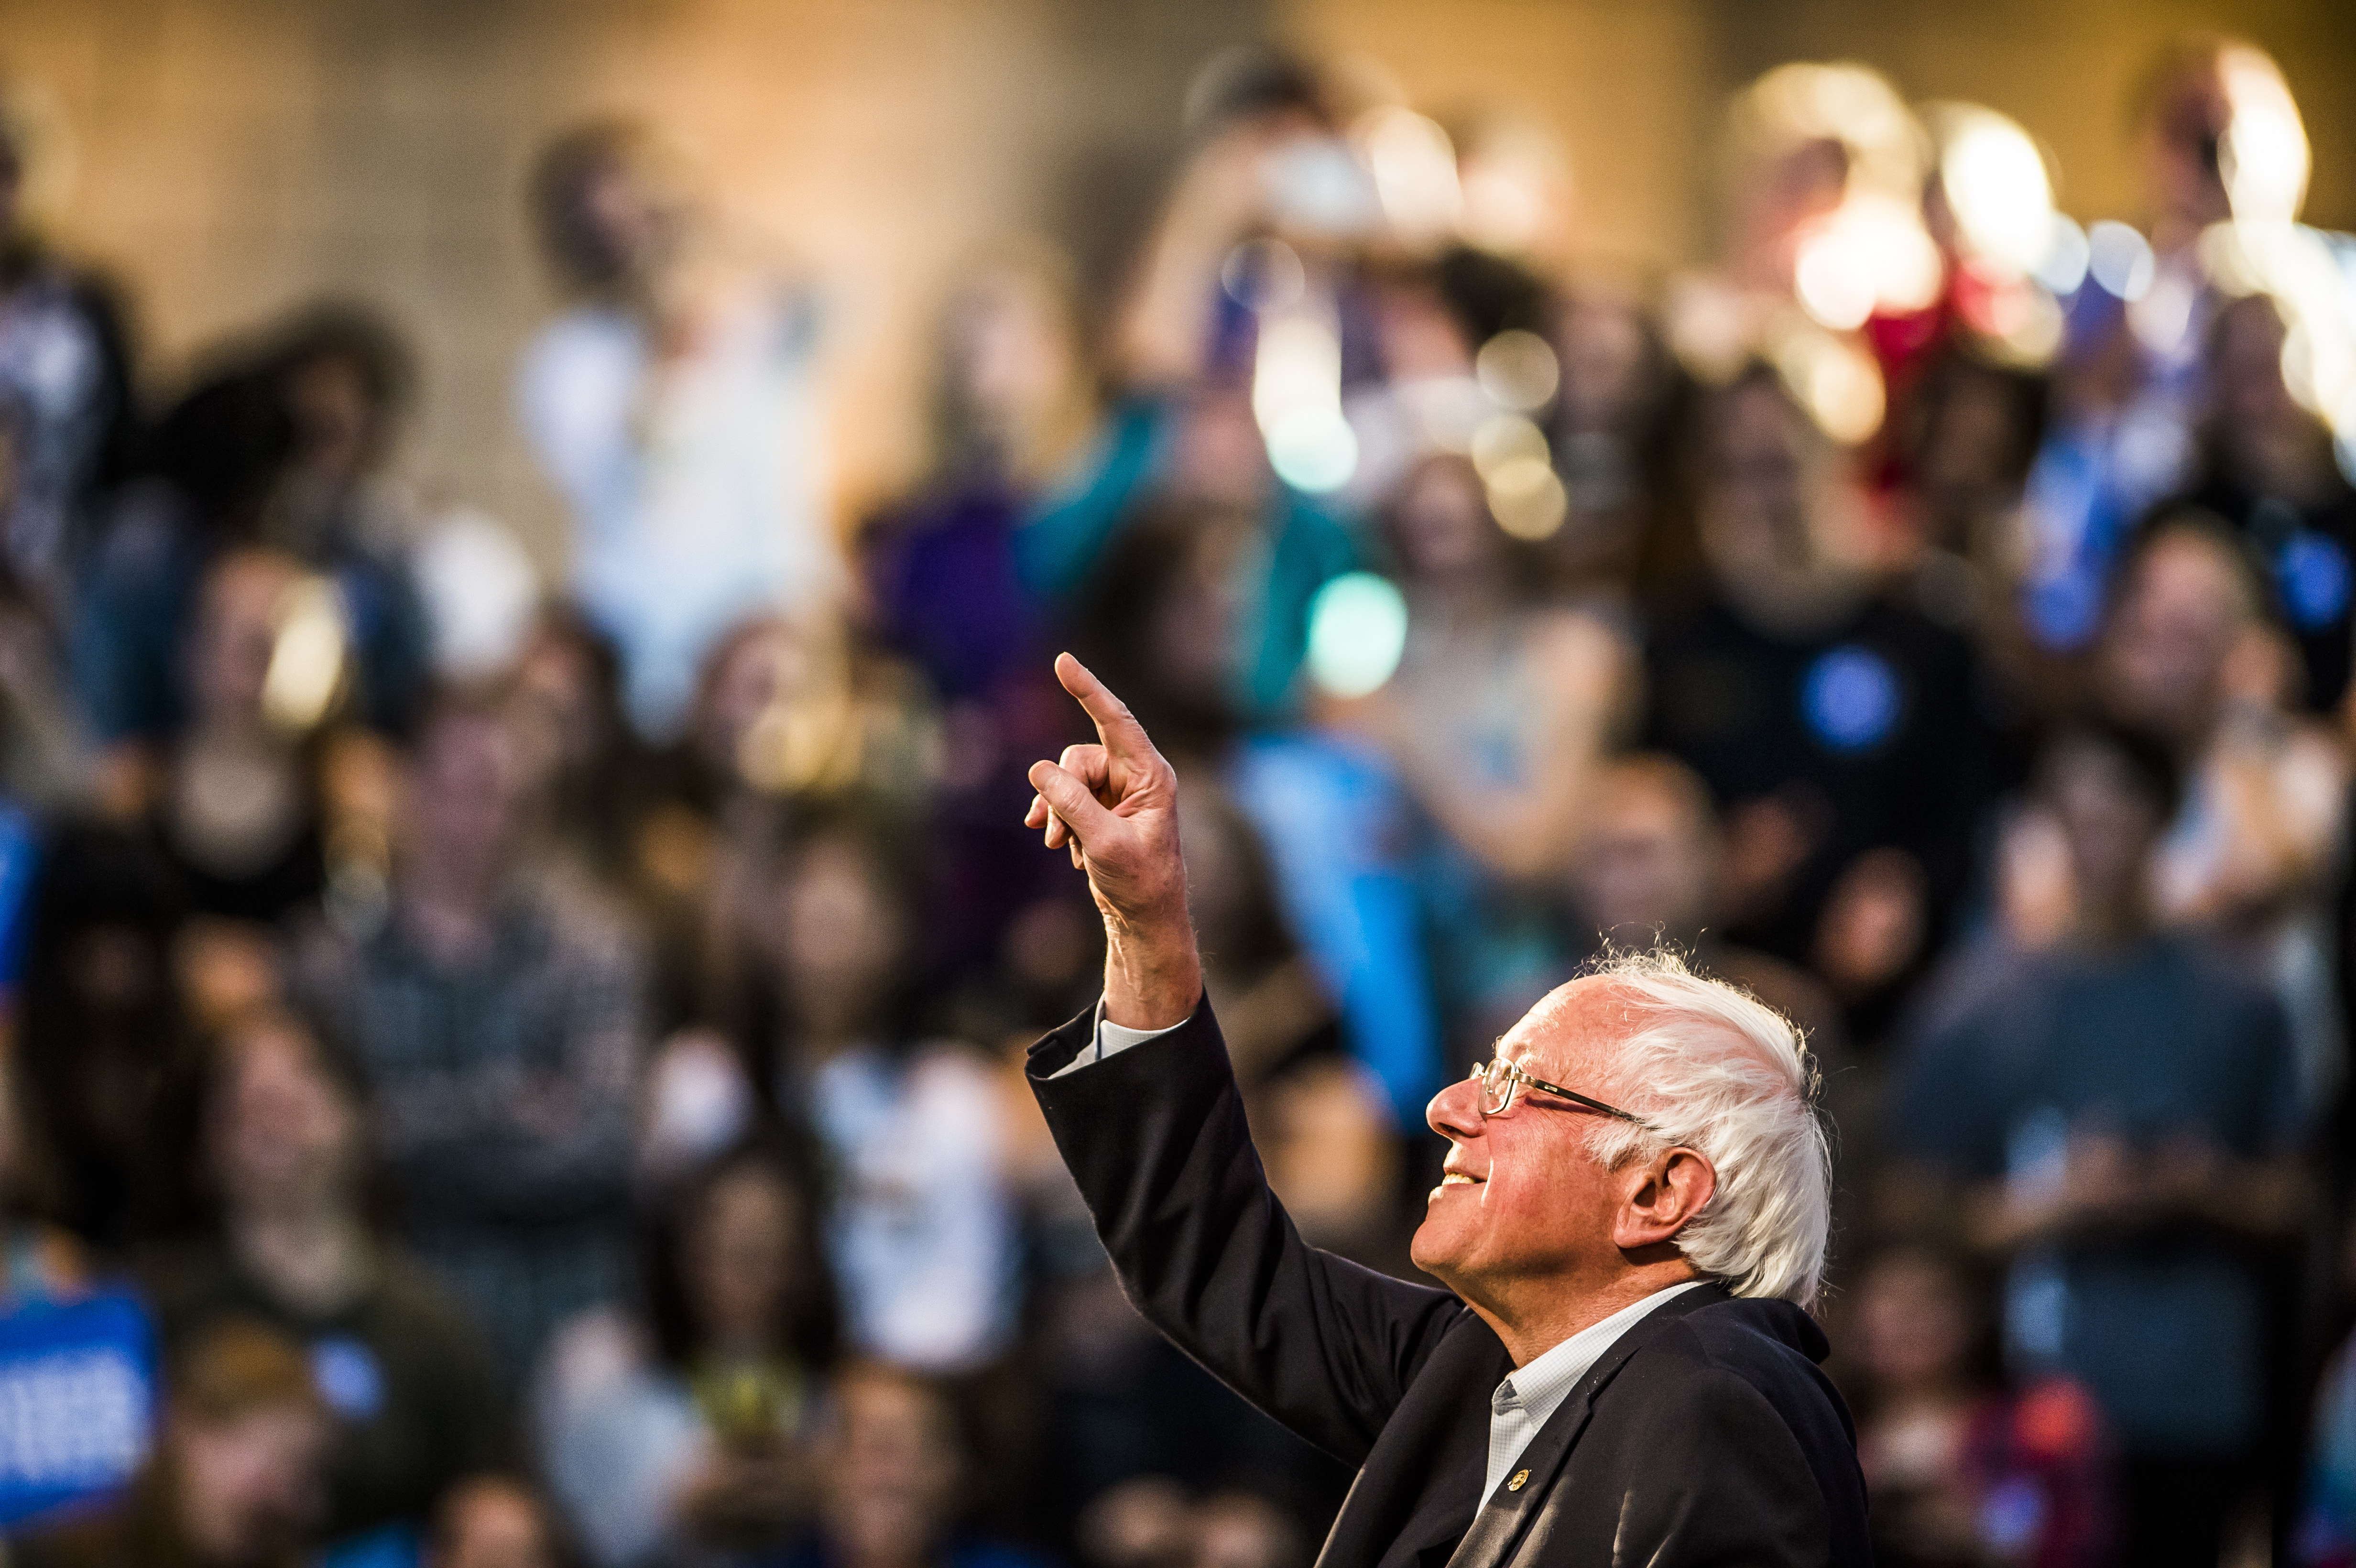 Vermont Sen. Bernie Sanders points to a supporter during a Get Out the Vote rally at Colorado College on Saturday, Nov. 5, 2016.